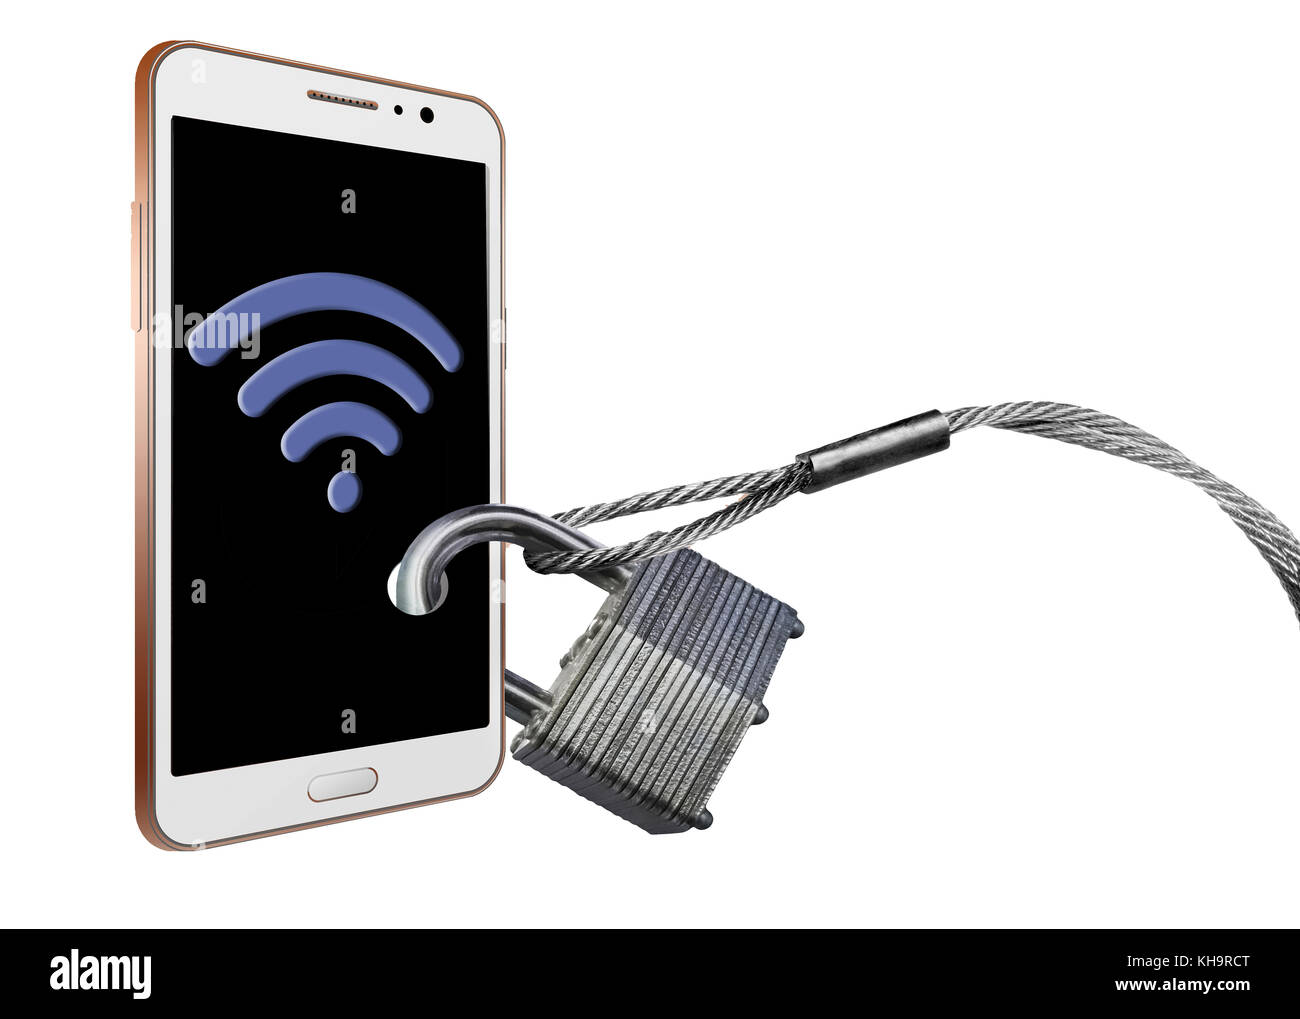 Cell phone security and preventing signal theft is the theme of this illustration. Wi-fi signals, Bluetooth and - Stock Image